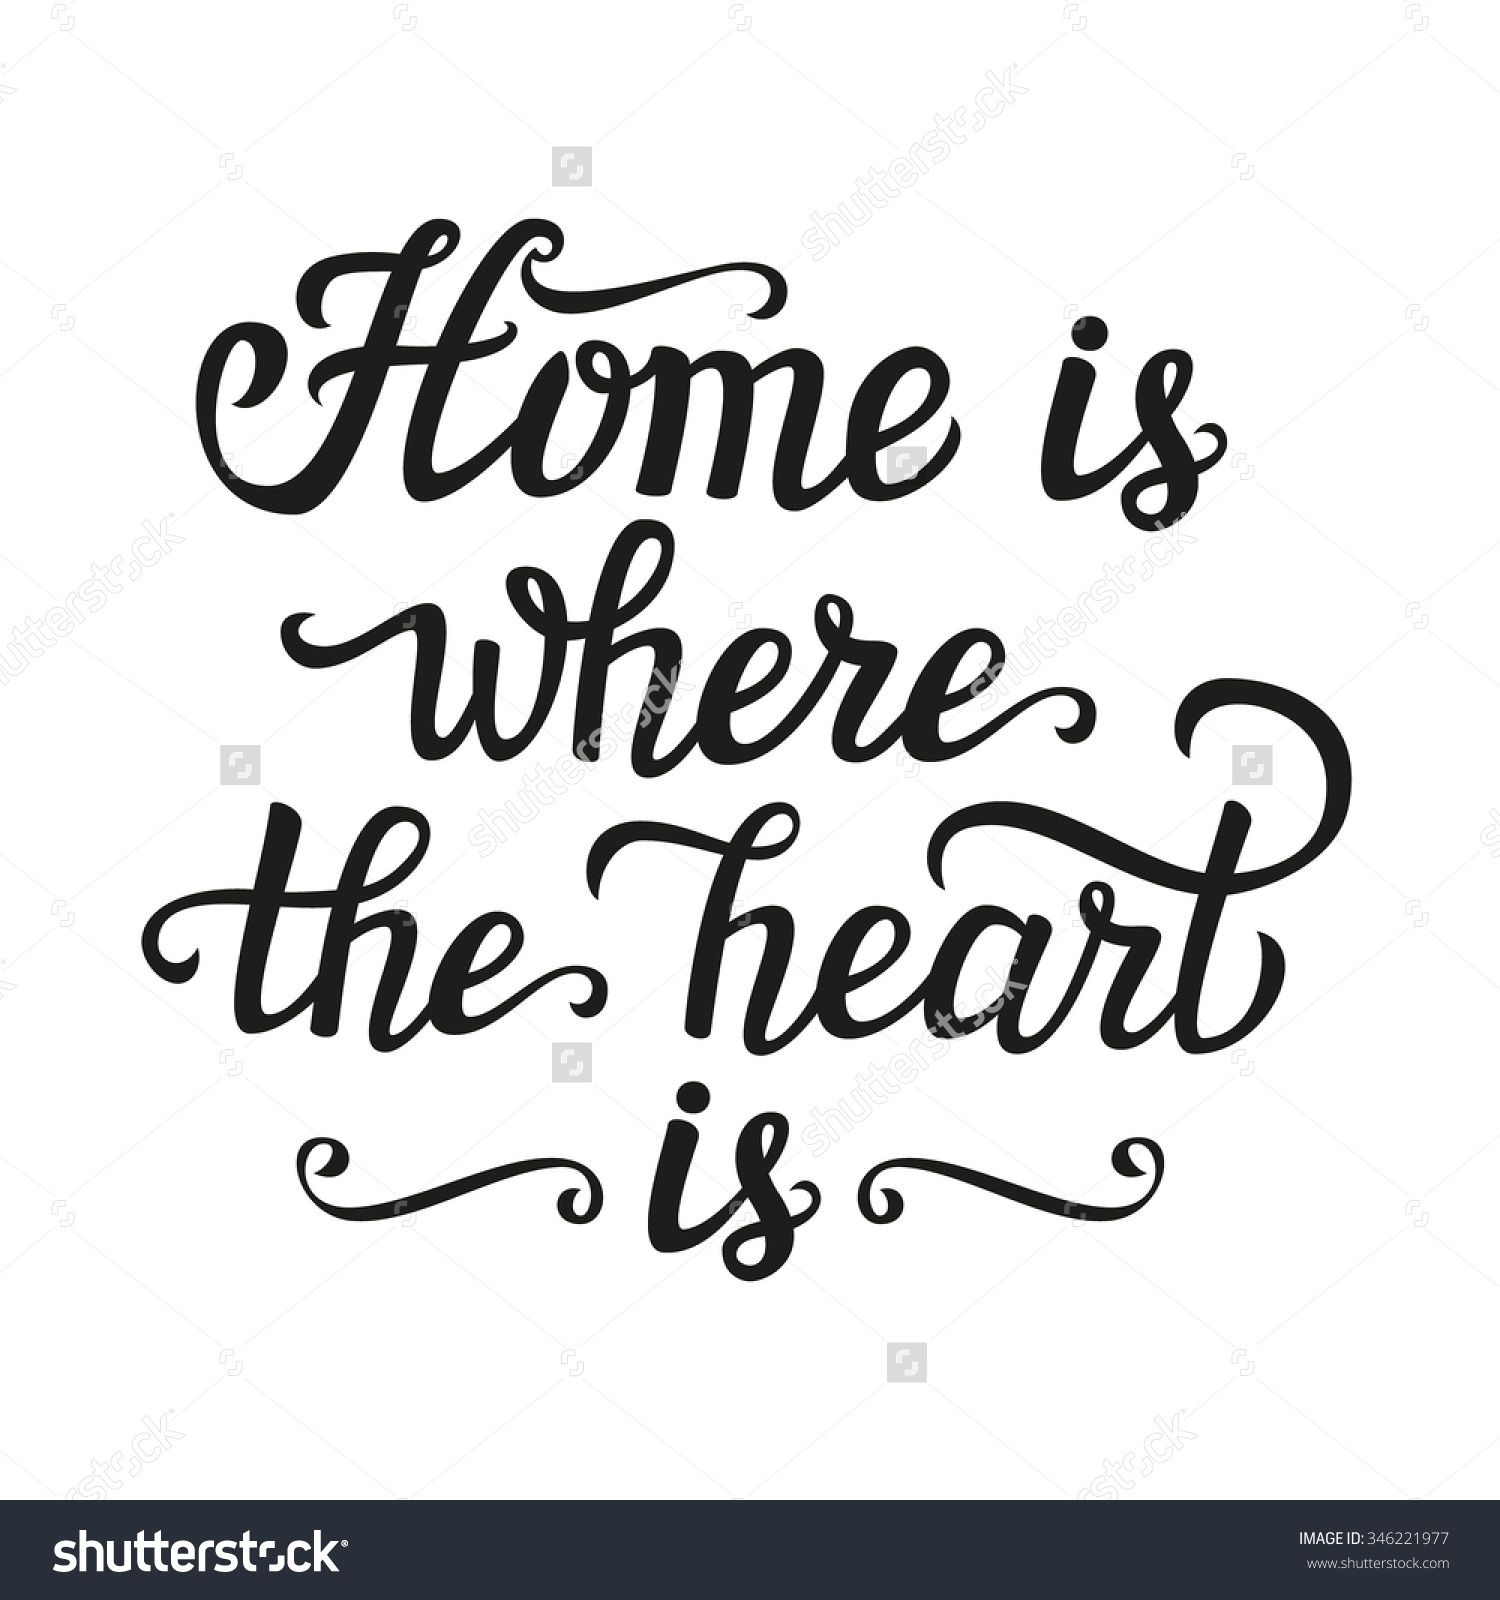 Home Is Where The Heart Is Quote Stockvectorhandletteringtypographypostercalligraphicscript